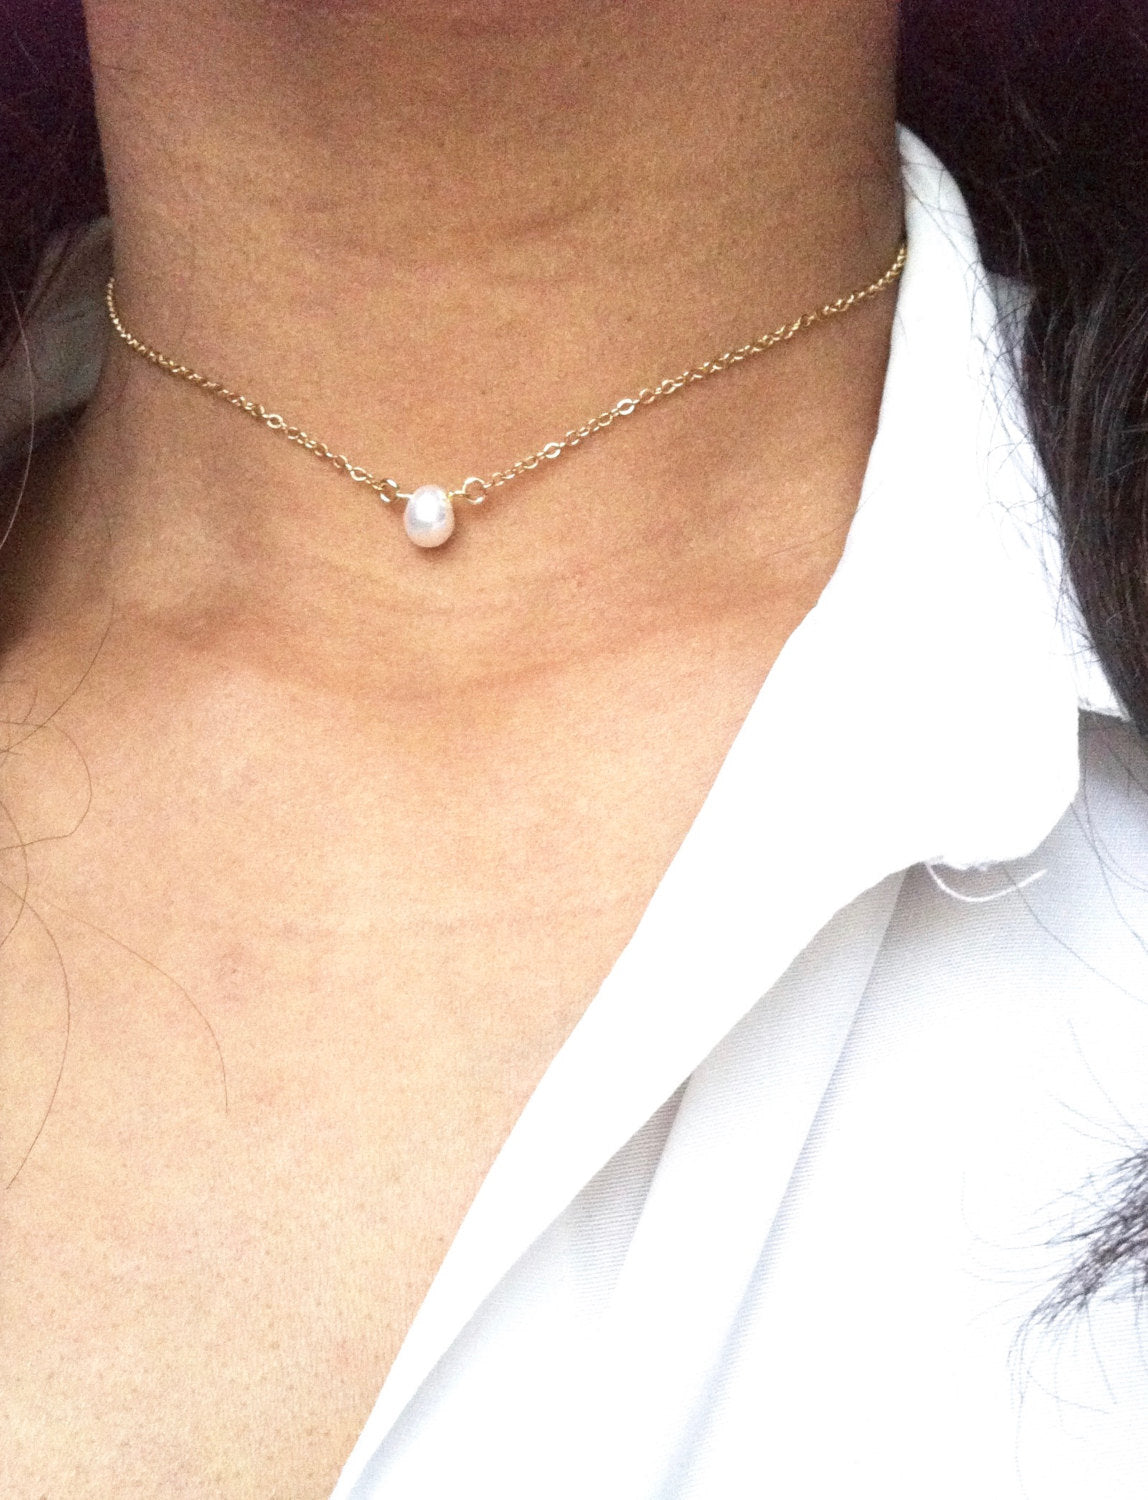 Small Delicate Single Pearl Choker Necklace | Dainty Pearl Choker Necklace | Simple Everyday Choker | IB Jewelry